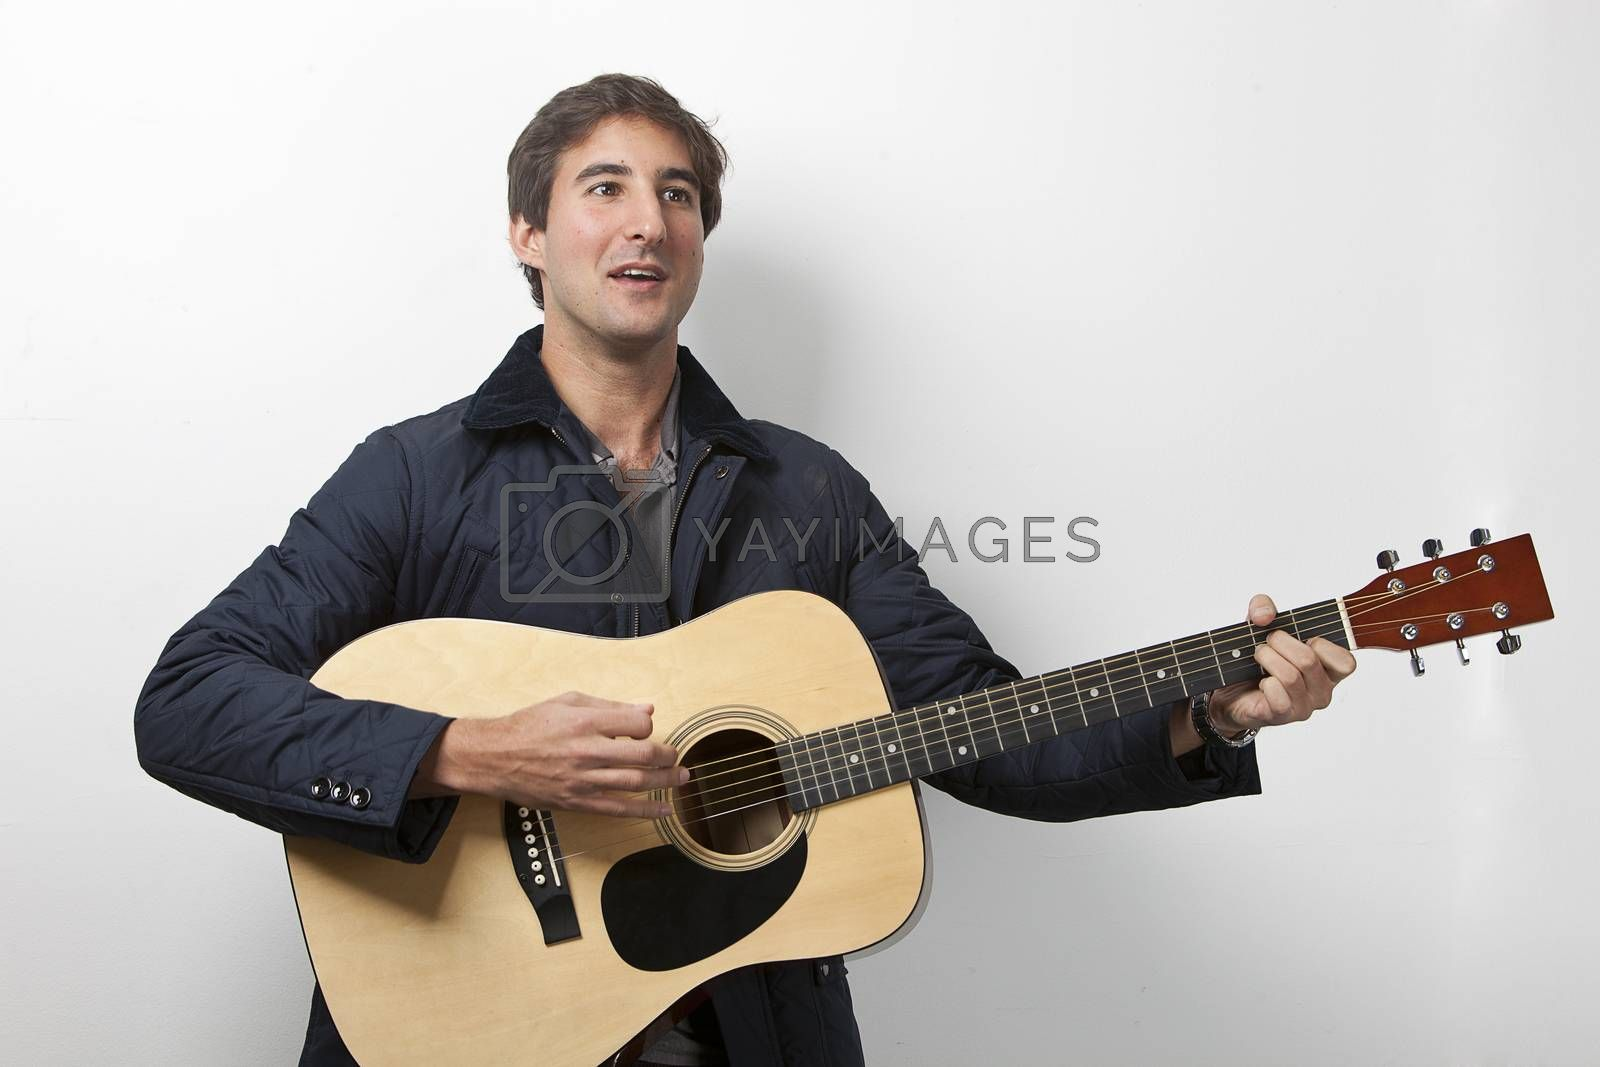 Young man playing guitar while signing against white background